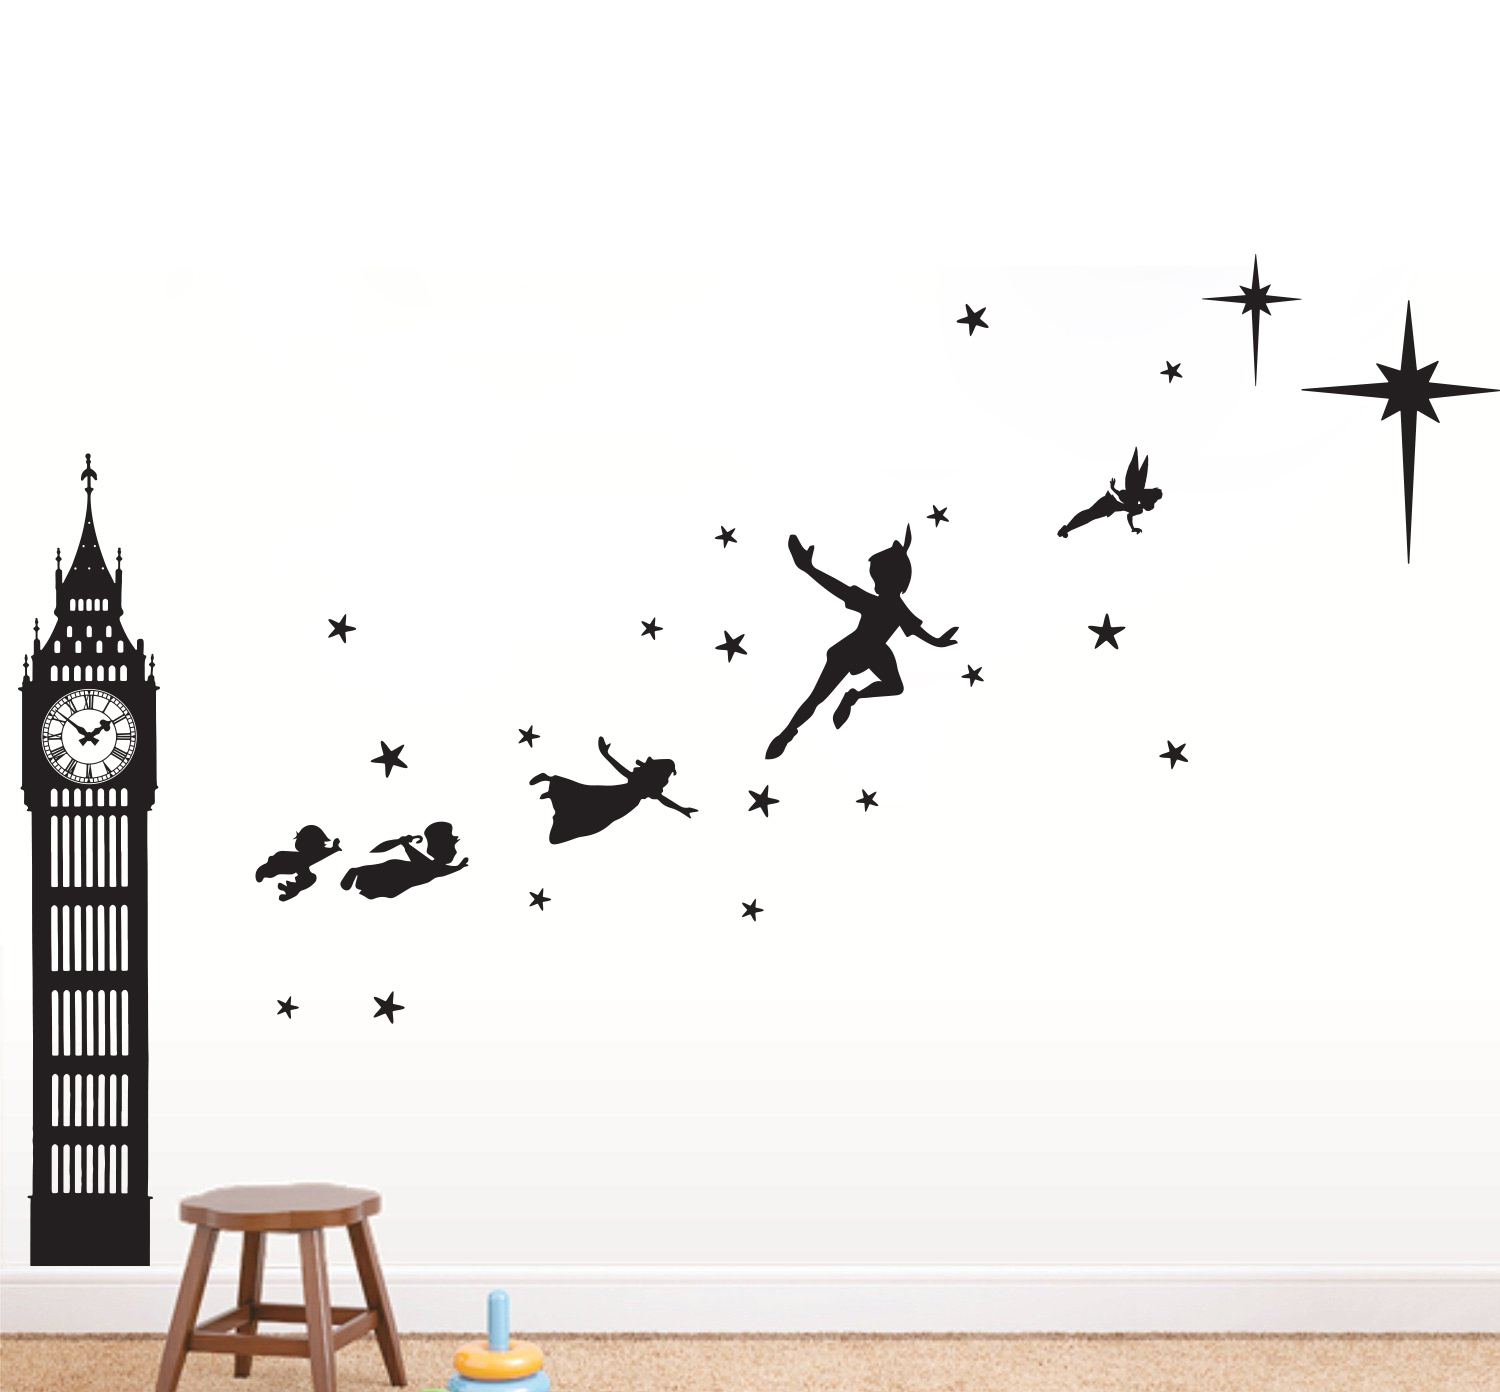 Peter Pan Second Star Wall Decal - The Decal Guru